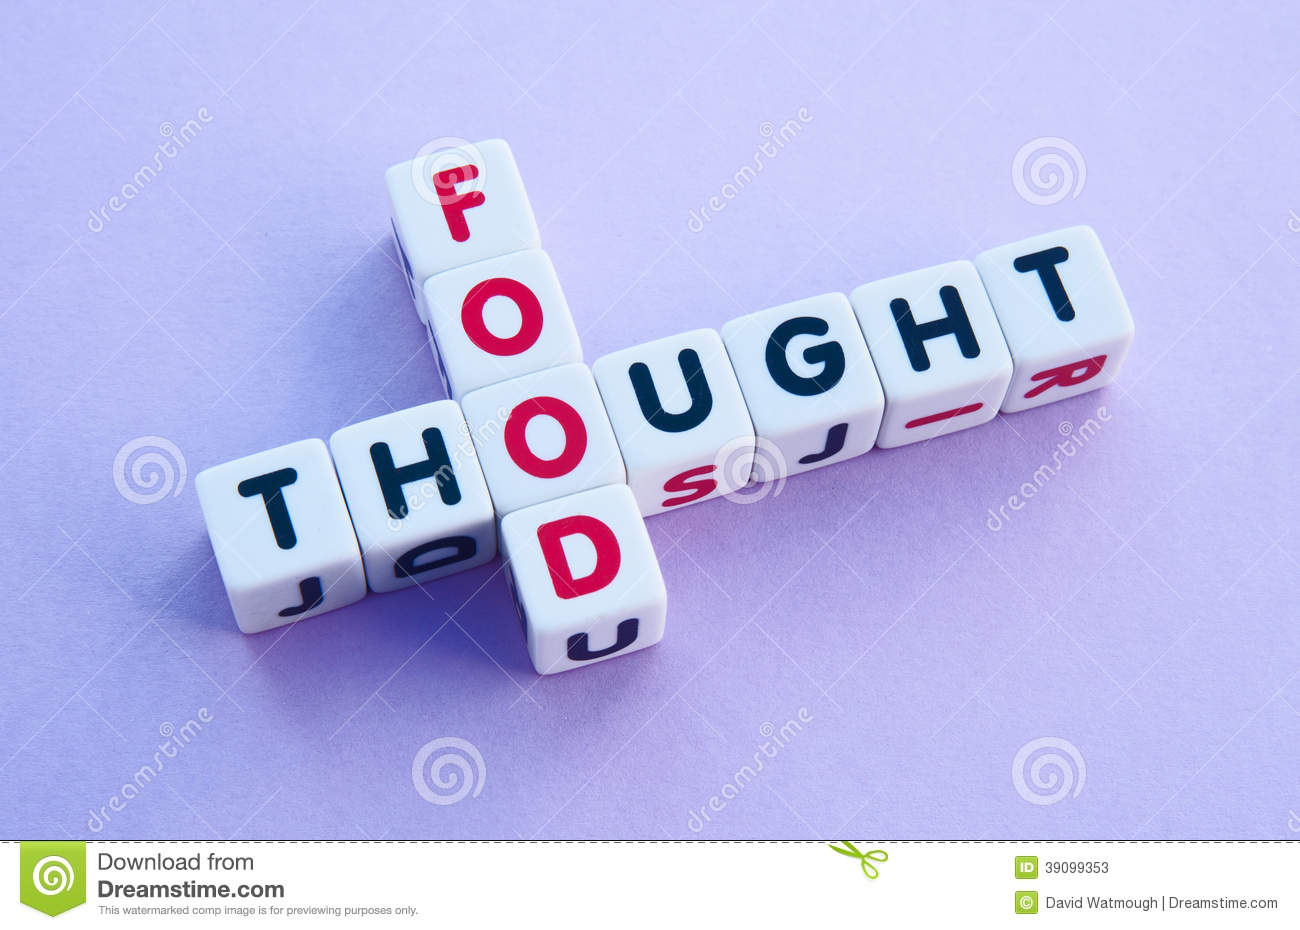 Food for thought clipart clip download Food For Thought. Stock Illustration - Image: 39828219 clip download